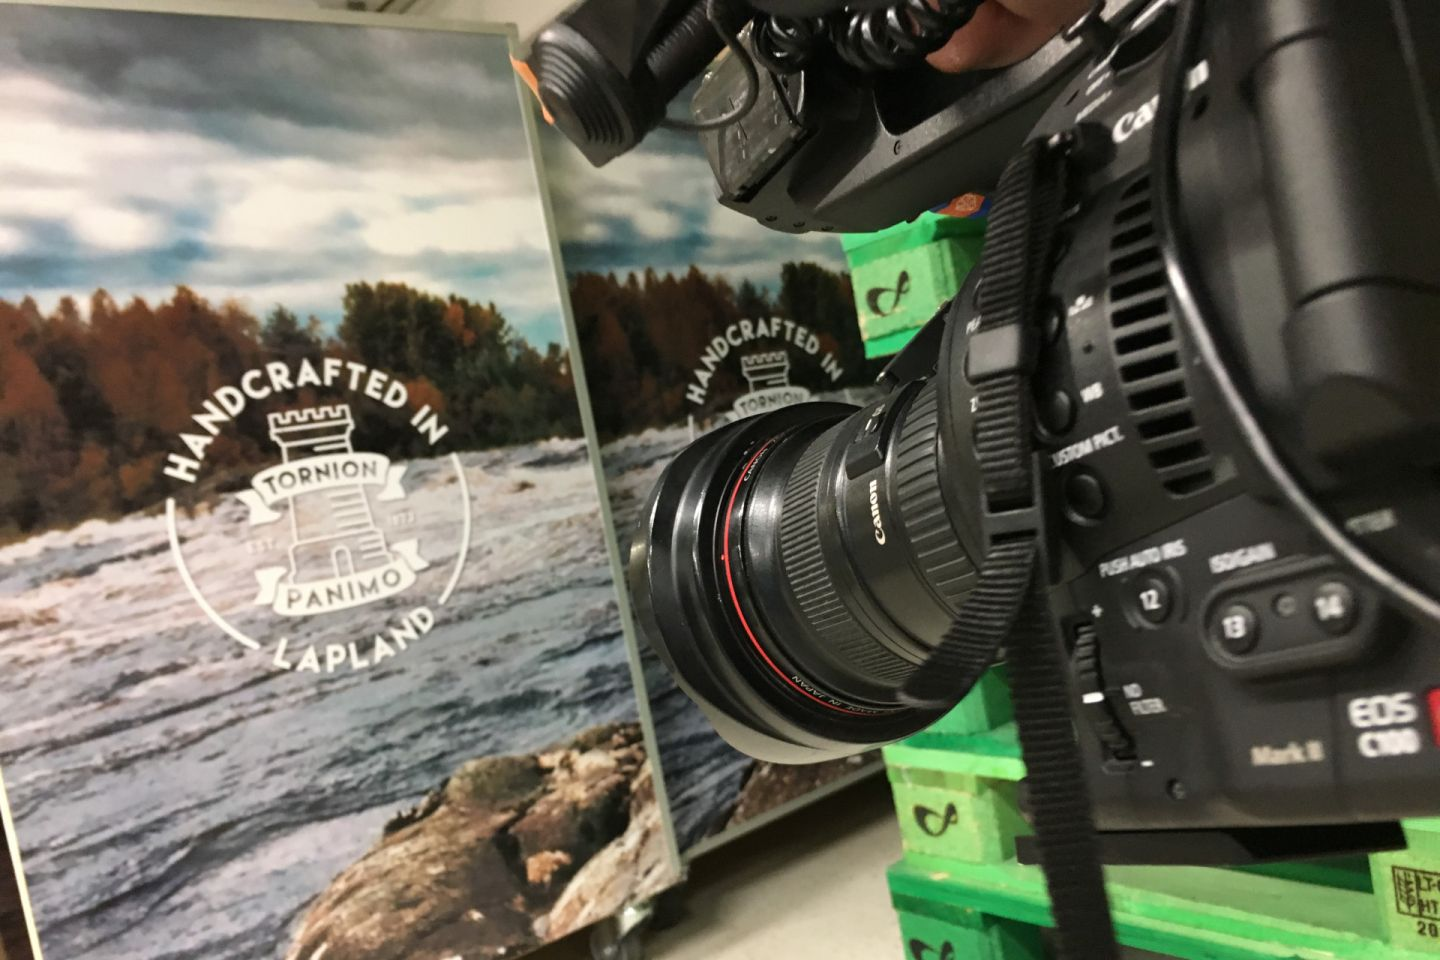 Lapin Panimo brochure, behind the scenes with Lapland Film Services